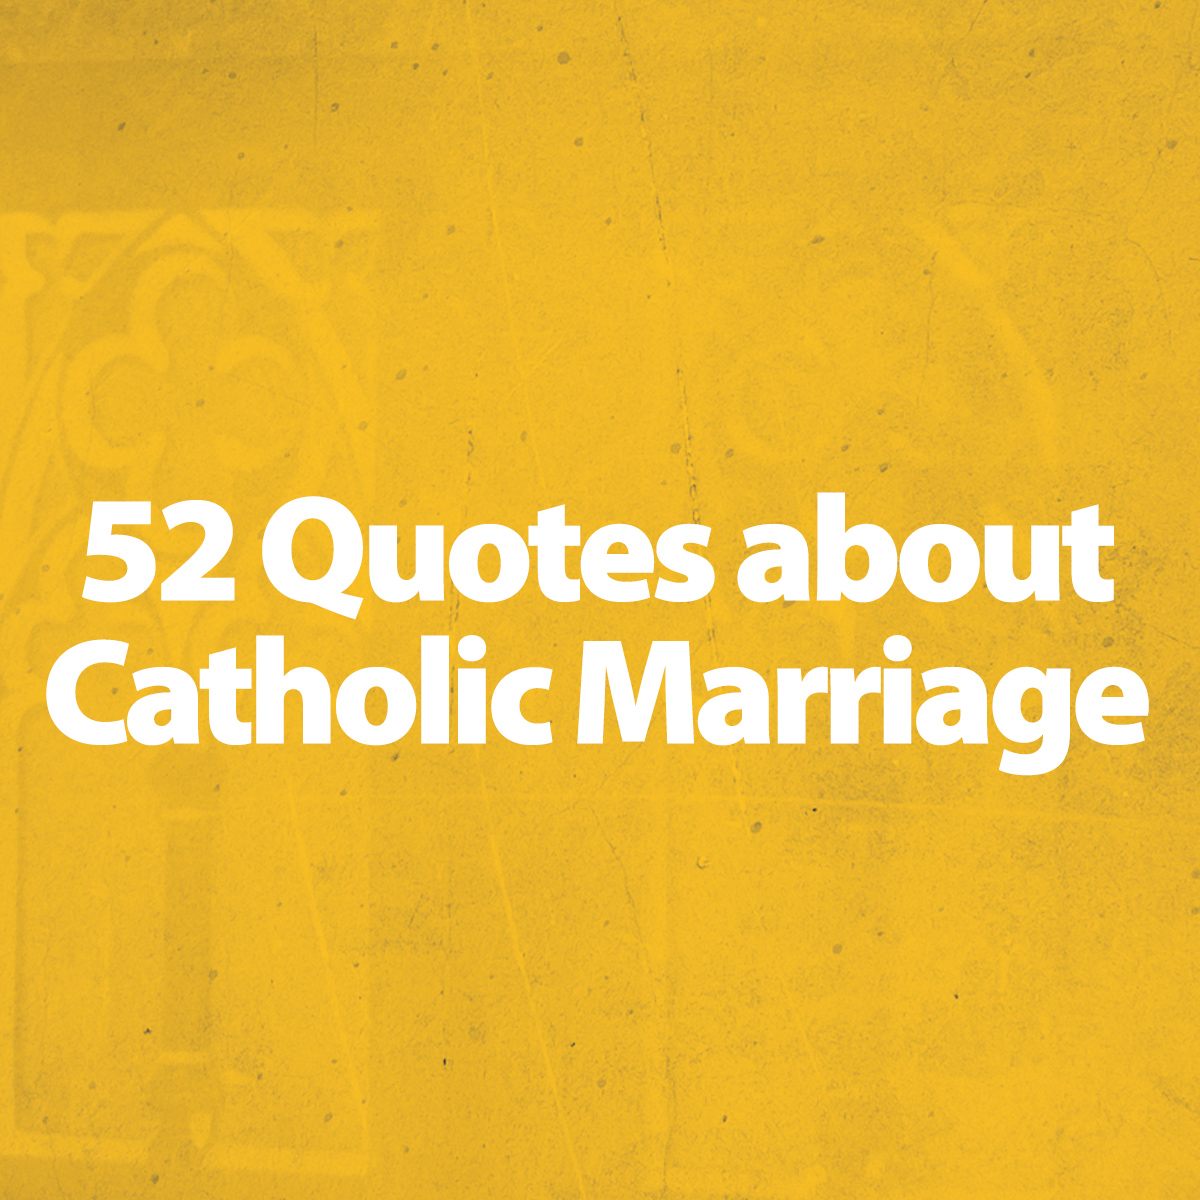 Catholic Marriage Quotes